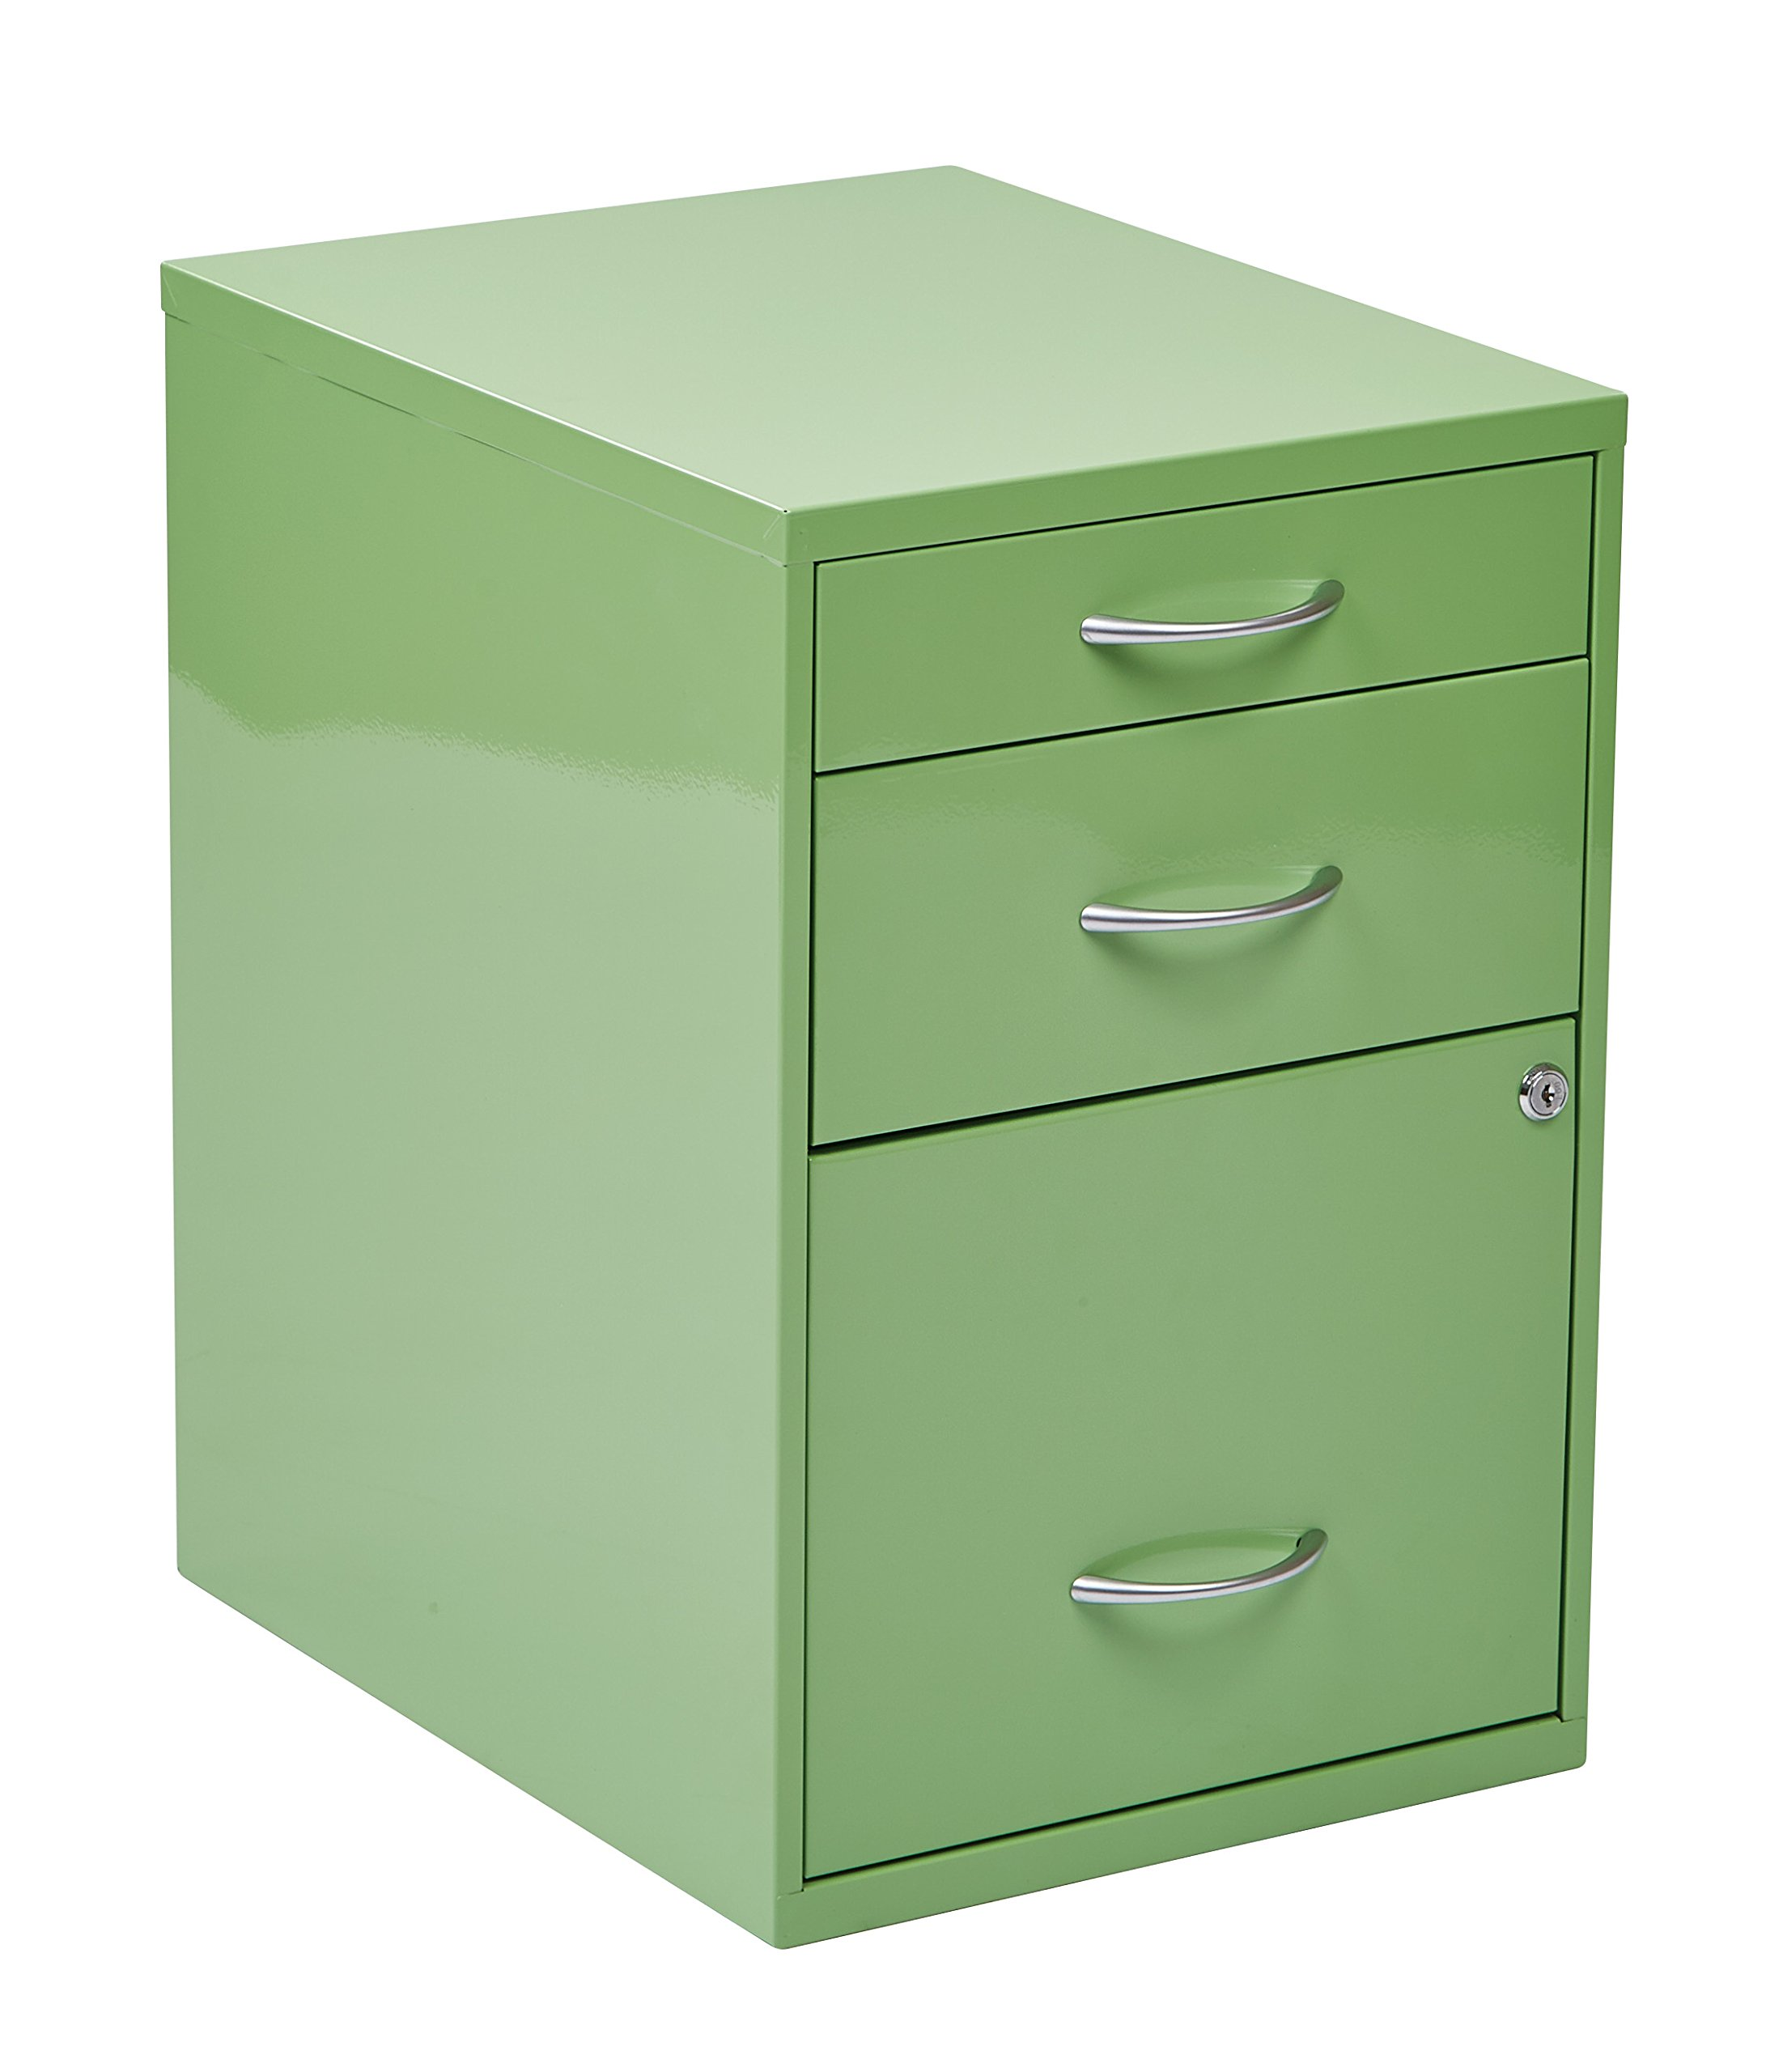 Office Star 3-Drawer Metal File Cabinet, Green Finish